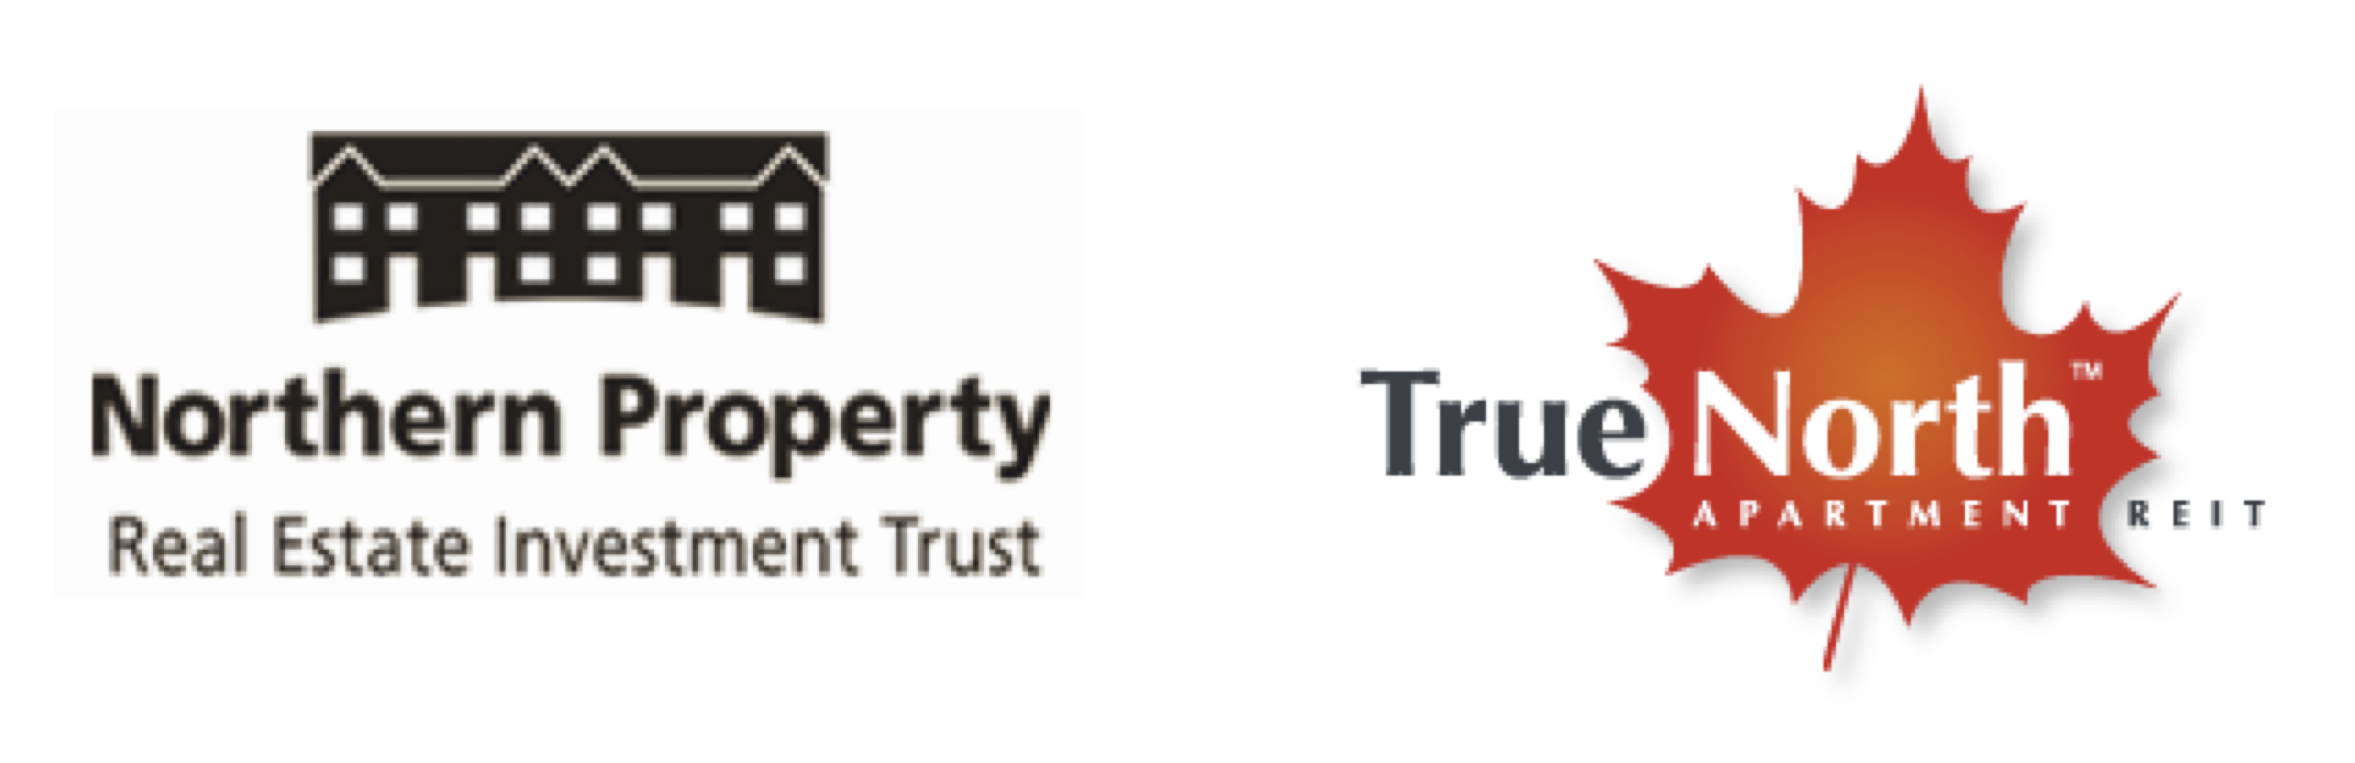 Northern Property To Buy Apartment Reit True North Rhb Magazine